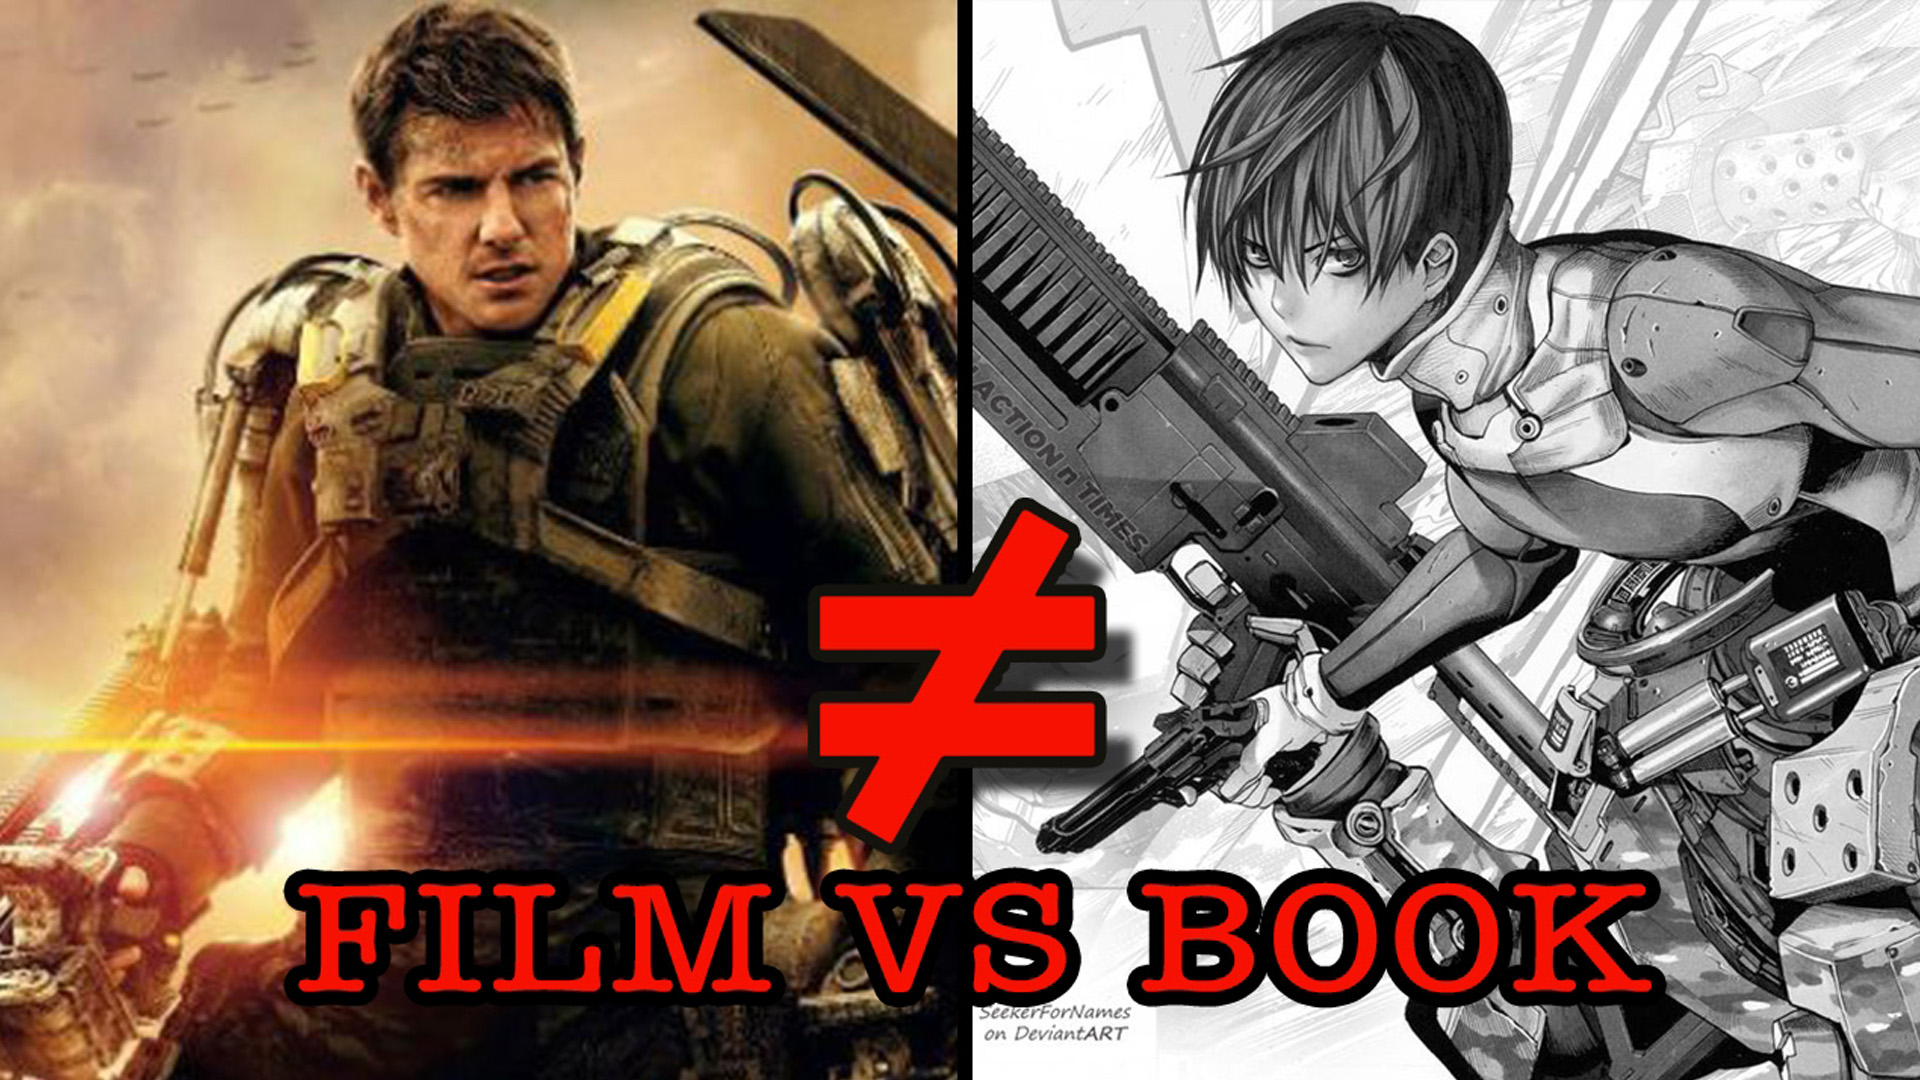 The Differences Between Edge Of Tomorrow And All You Need Is Kill